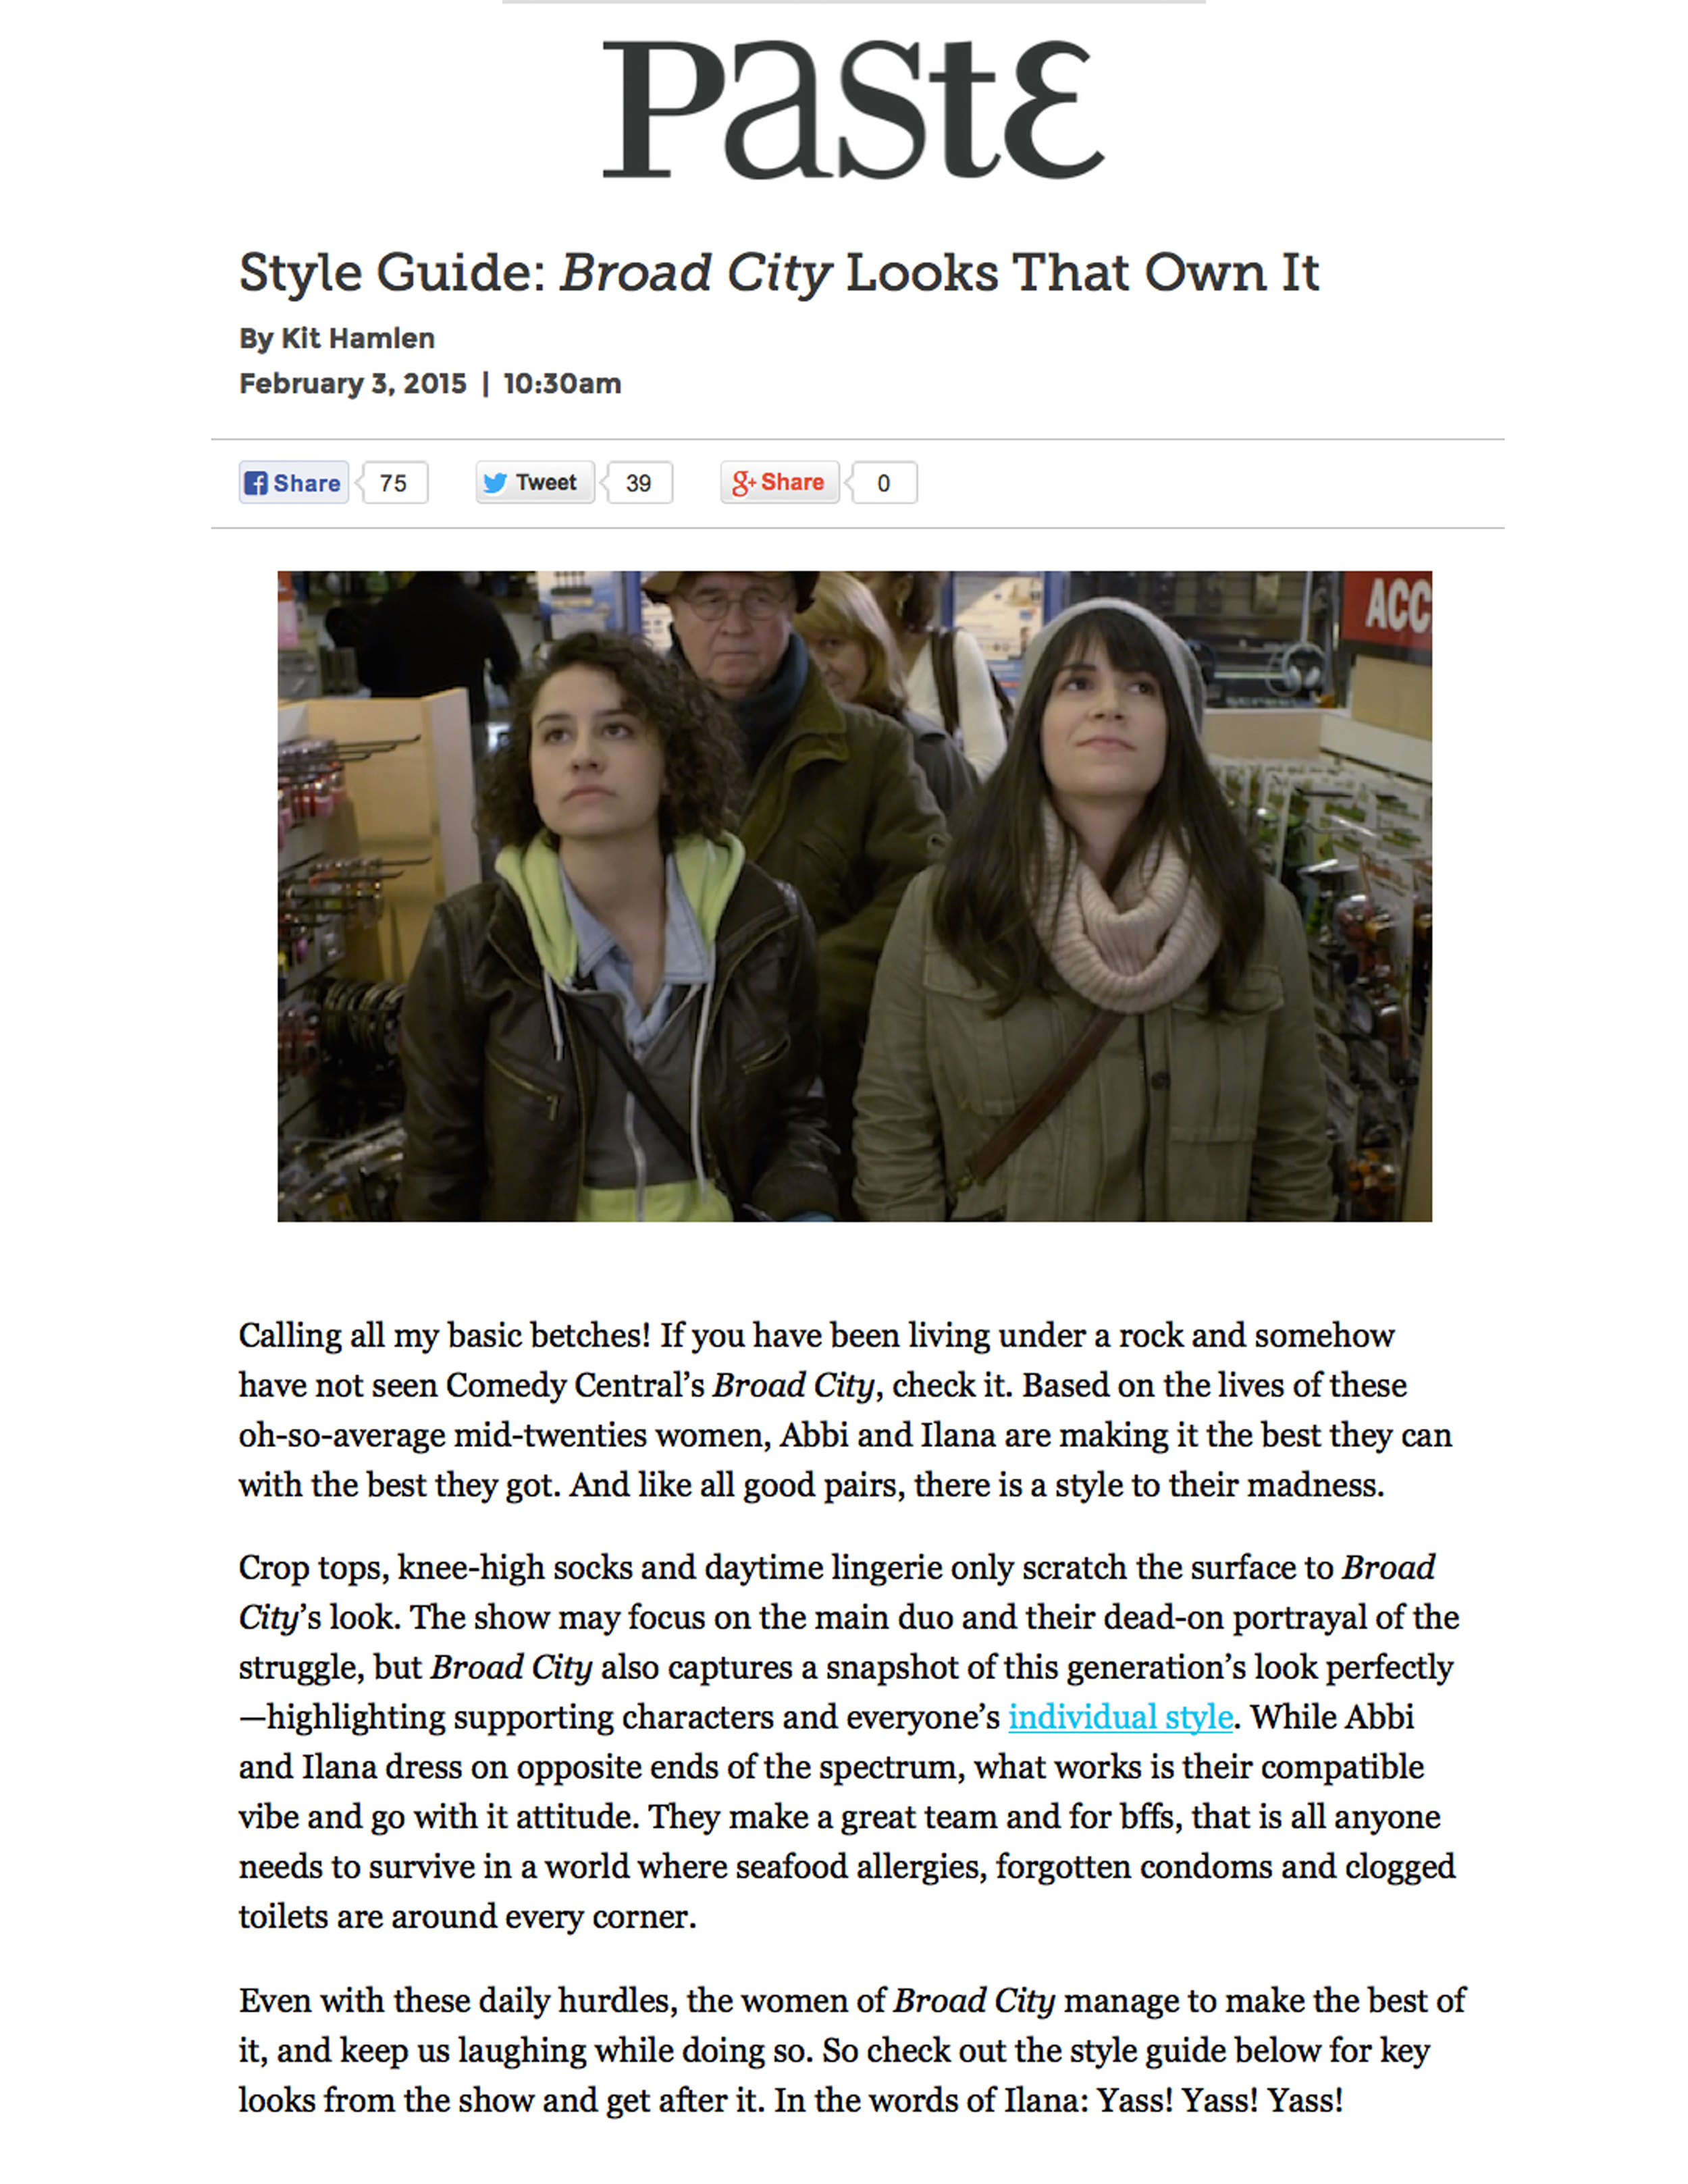 PASTE MAGAZINE    STYLE GUIDE: BROAD CITY LOOKS THAT OWN IT    FEBRUARY 2015